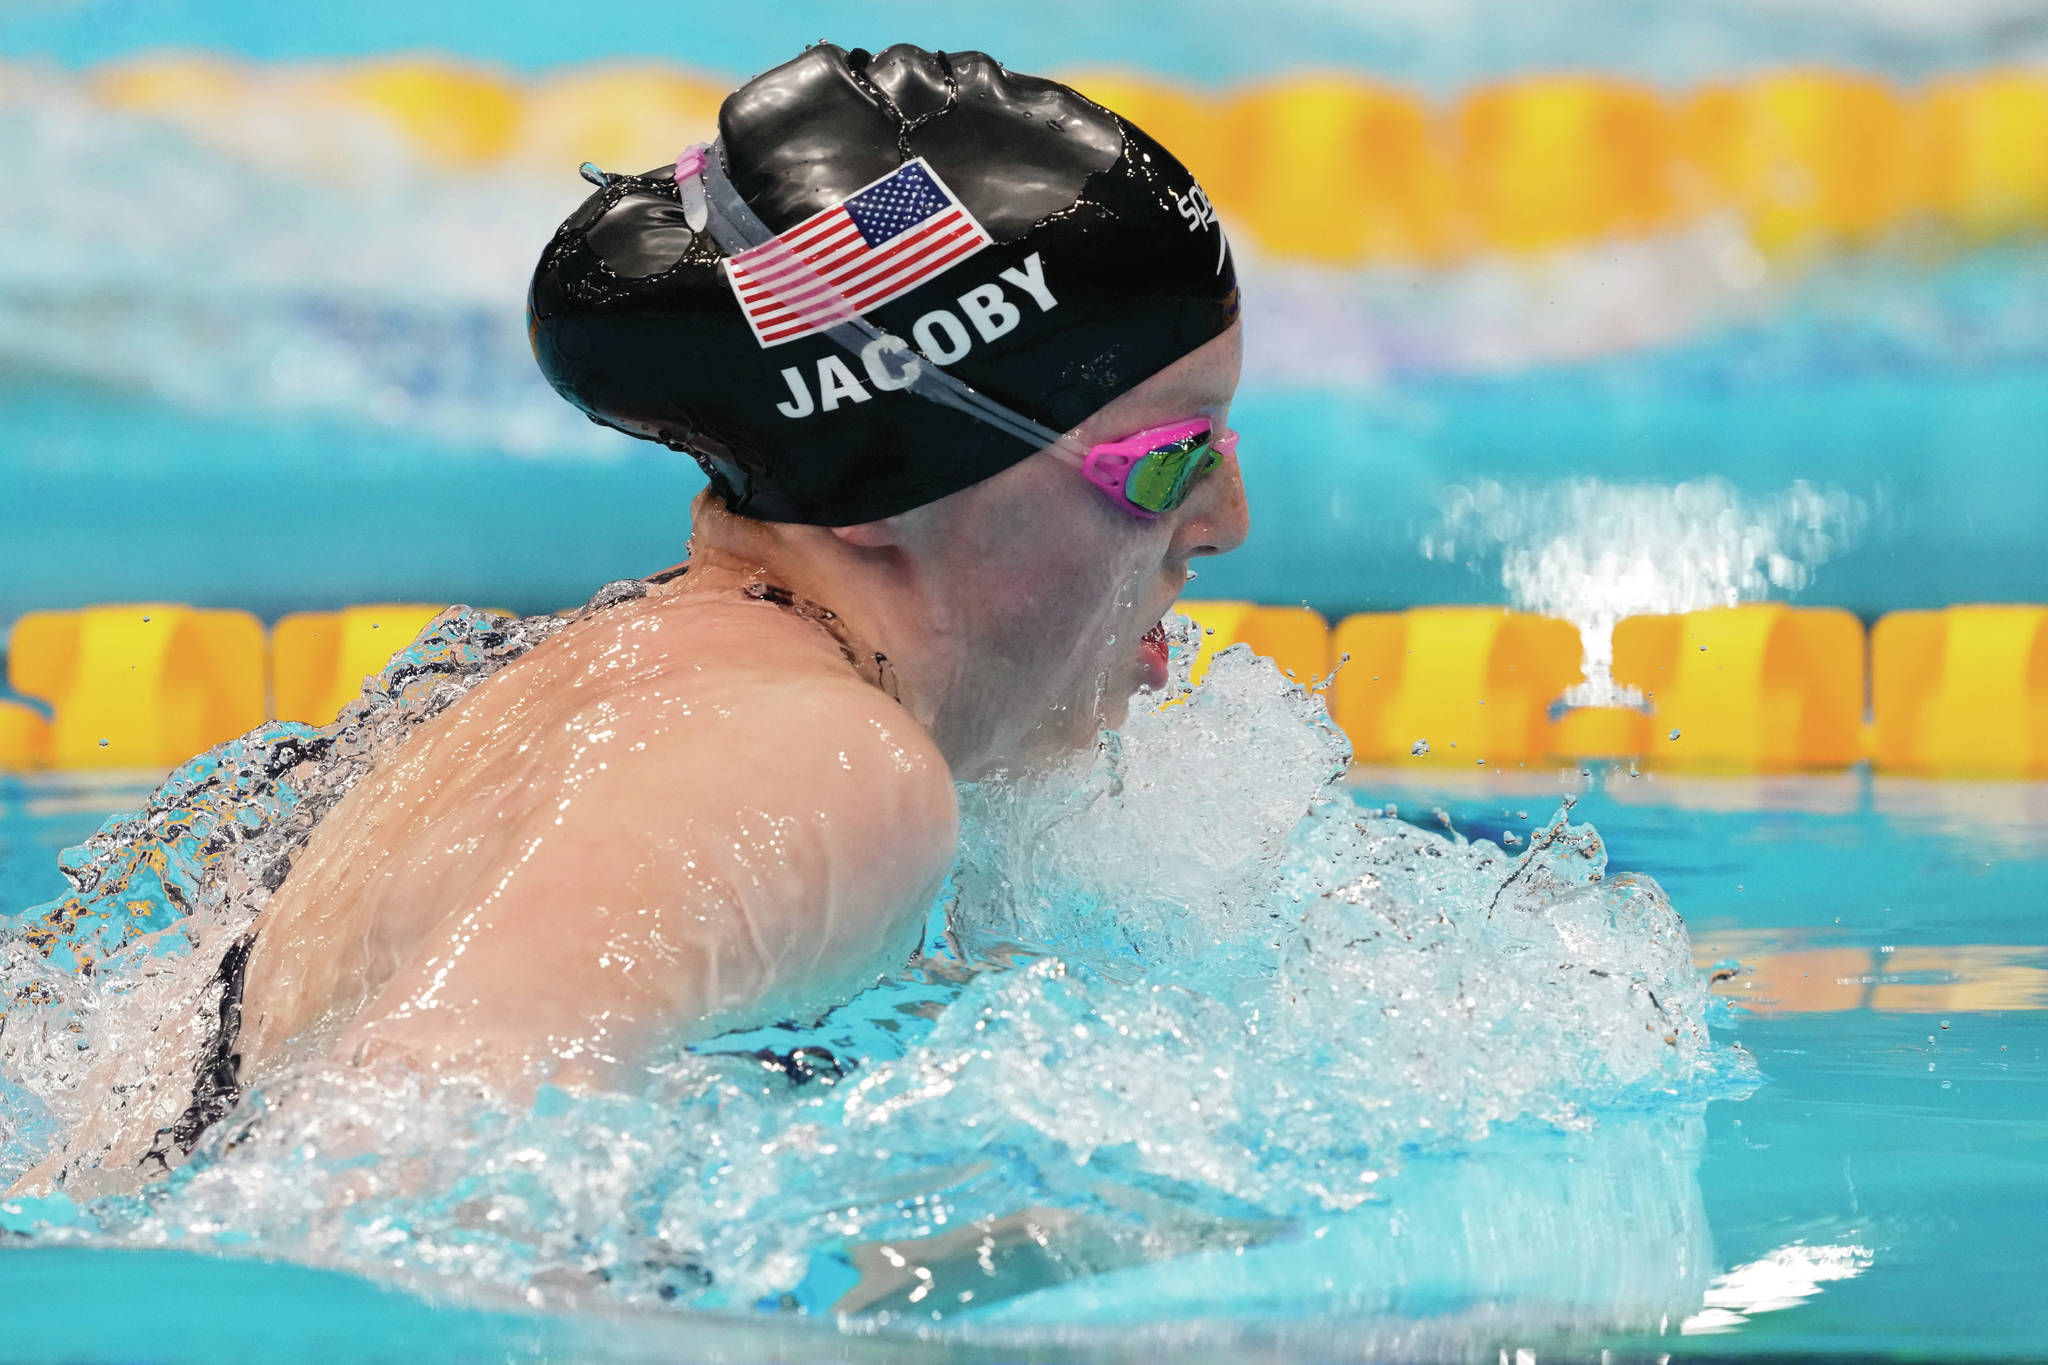 AP Photo / Petr David Josek Lydia Jacoby passed the world record holder and Olympic record holder in final 50 meters to win the 100 breaststroke.